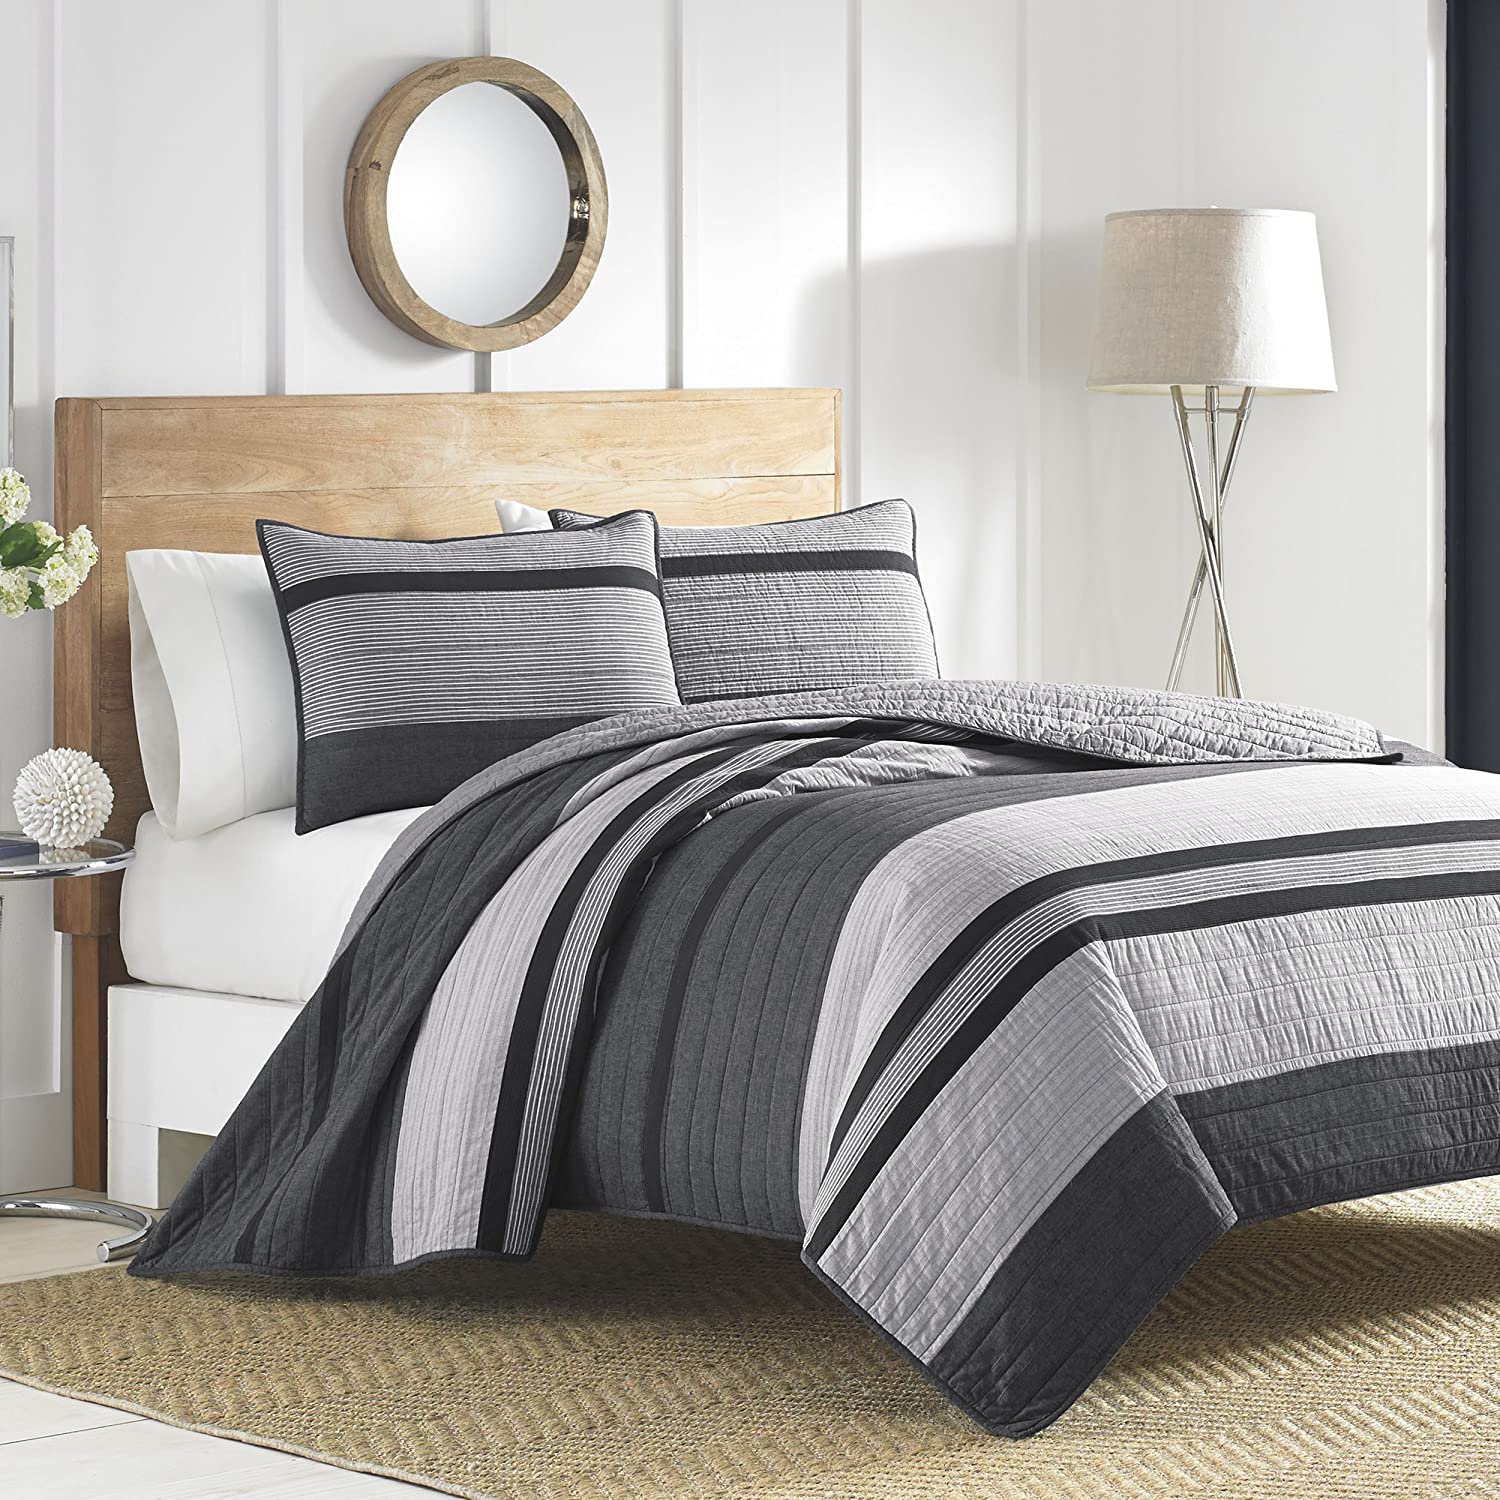 Nautica Vessey Cotton Pieced Quilt, Full/Queen, Gray